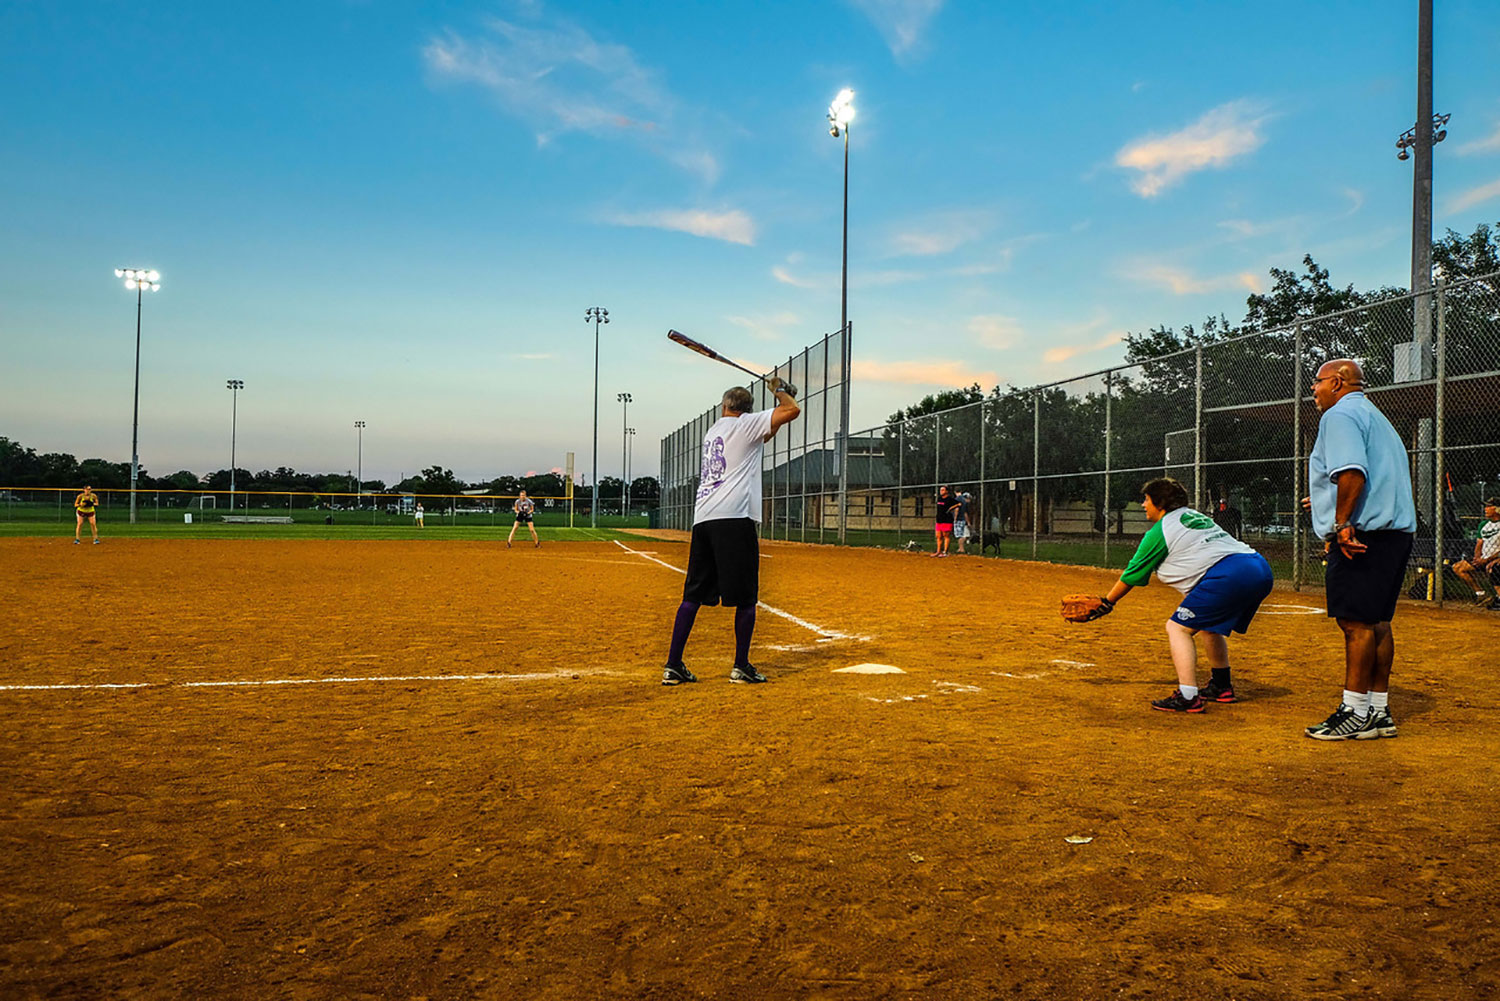 People playing softball at the McMaster Athletic Complex in Georgetown, TX